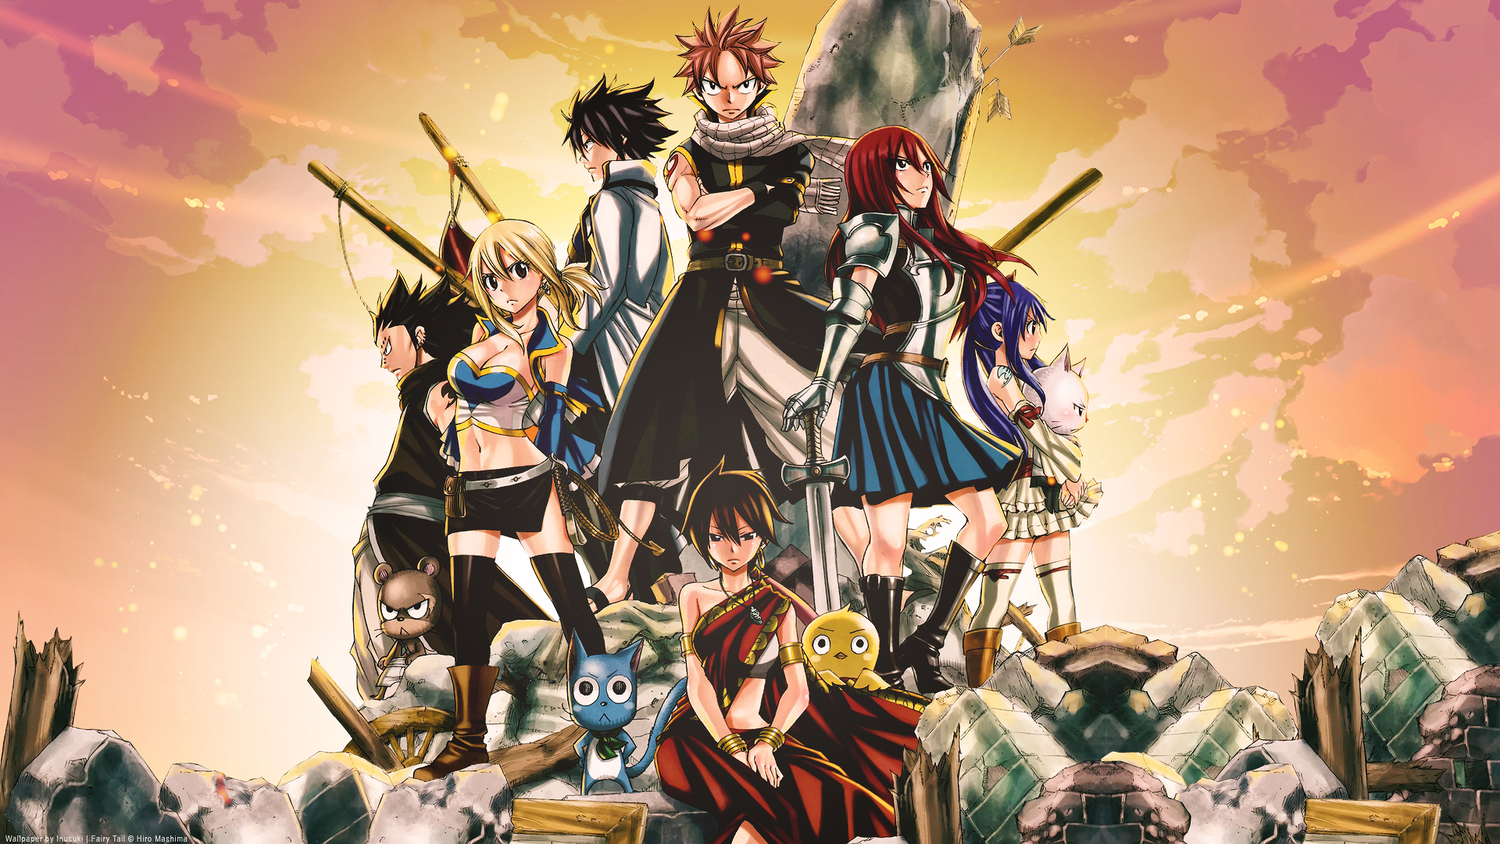 Related Wallpaper for Fairy Tail Wallpapers HD 1500x844